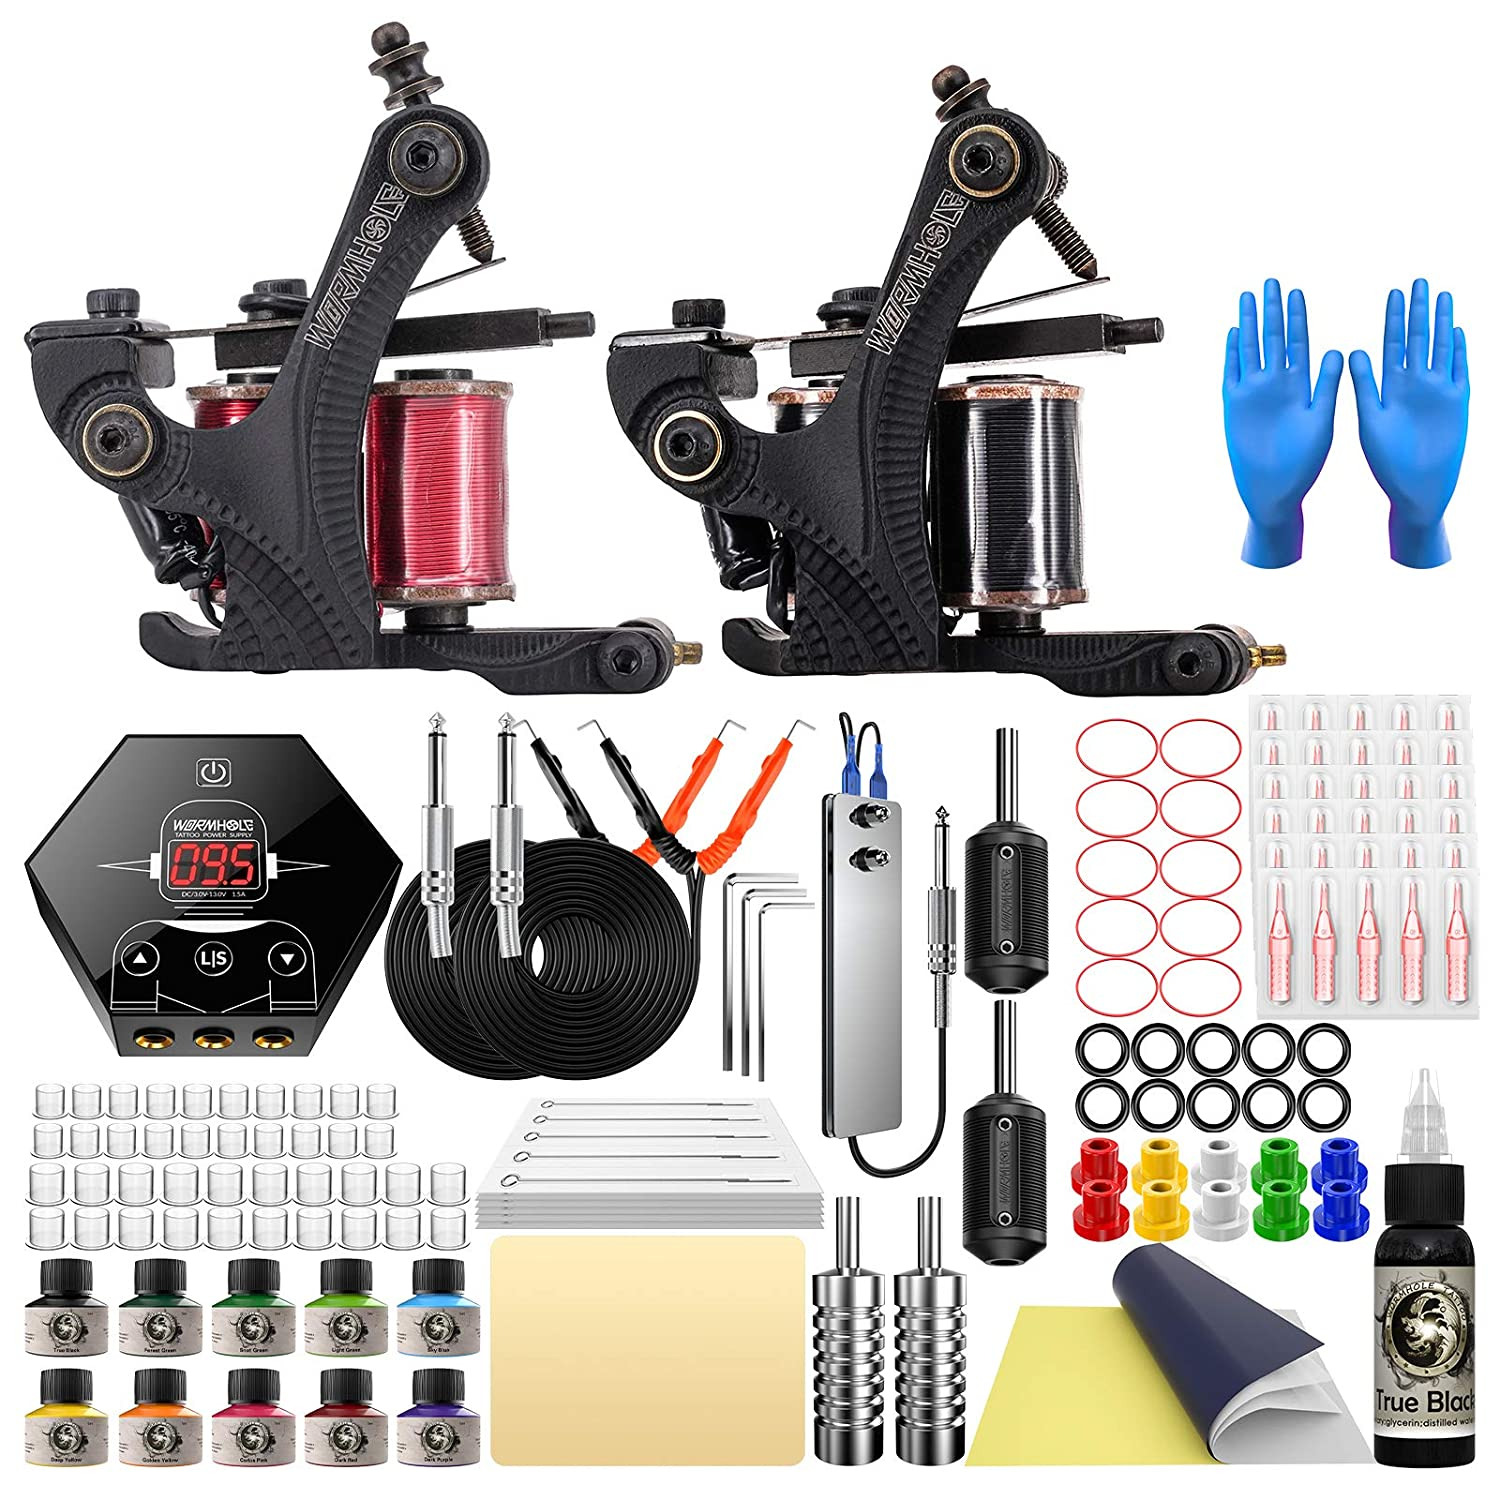 Wormhole Complete Tattoo Kit for Supply K Max 57% Our shop most popular OFF Beginners Power